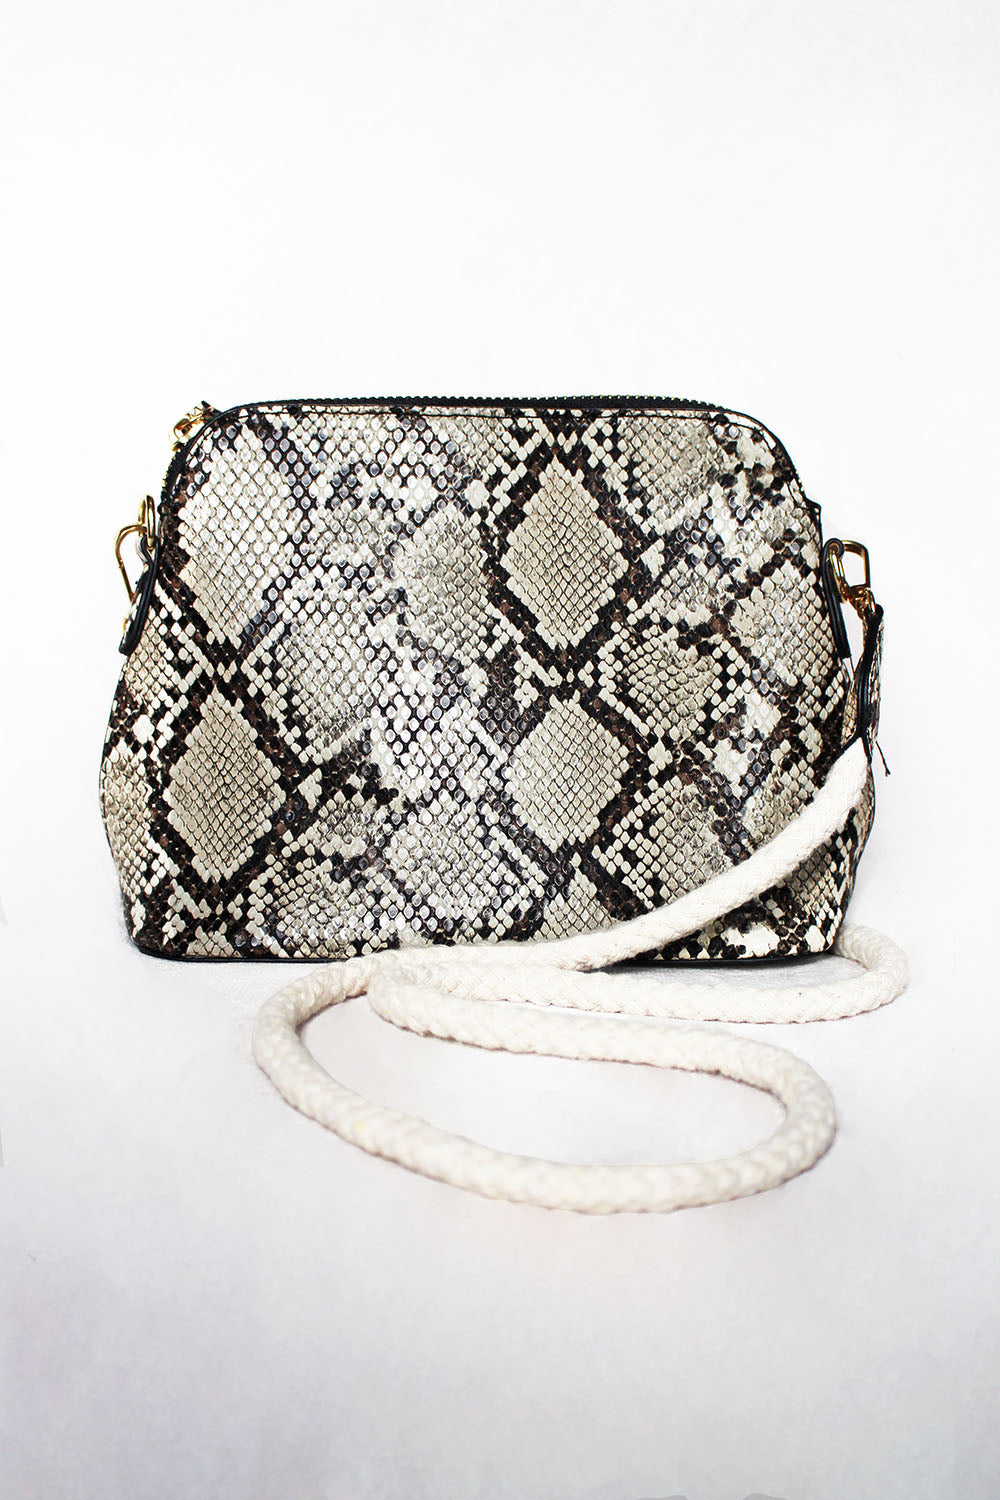 Snake Print Bag with Rope Strap